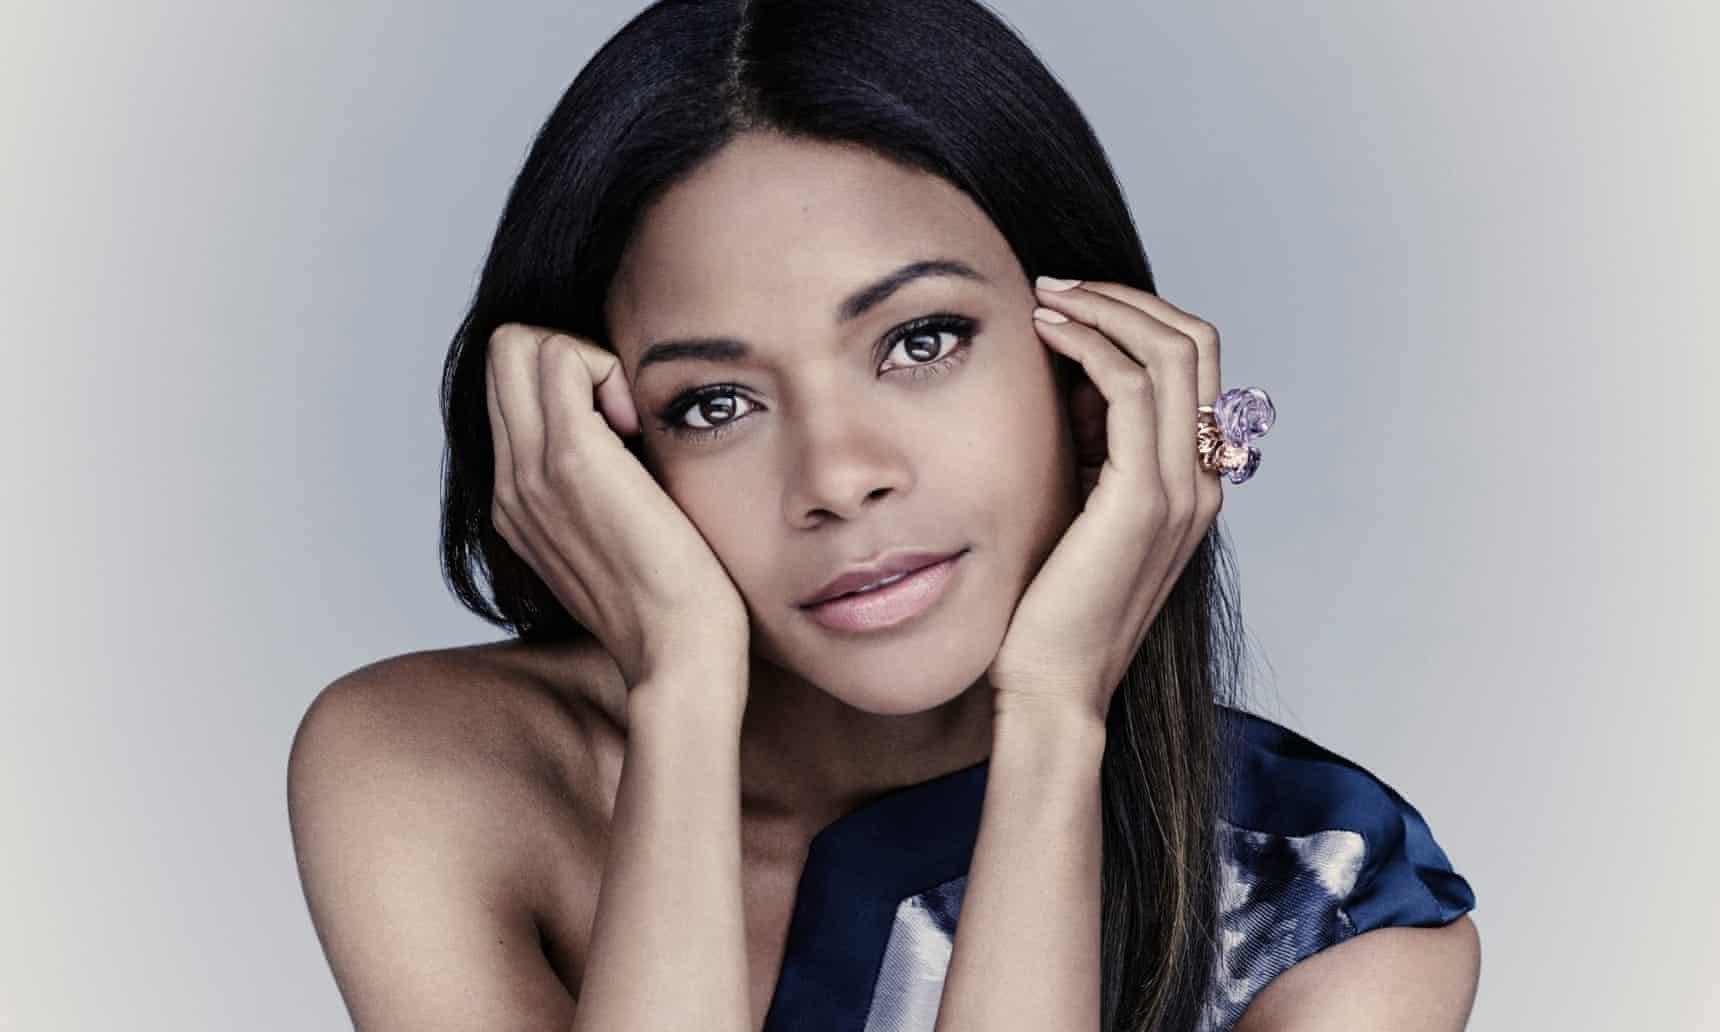 """People used to drink and drink and drink until they threw up all over the college grounds – where's the fun in that? It was one of the worst periods of my life. I couldn't connect with them on any level… I was quite sorry for them. But I just felt so lonely."" – Naomie Harris [1200 x 630]"